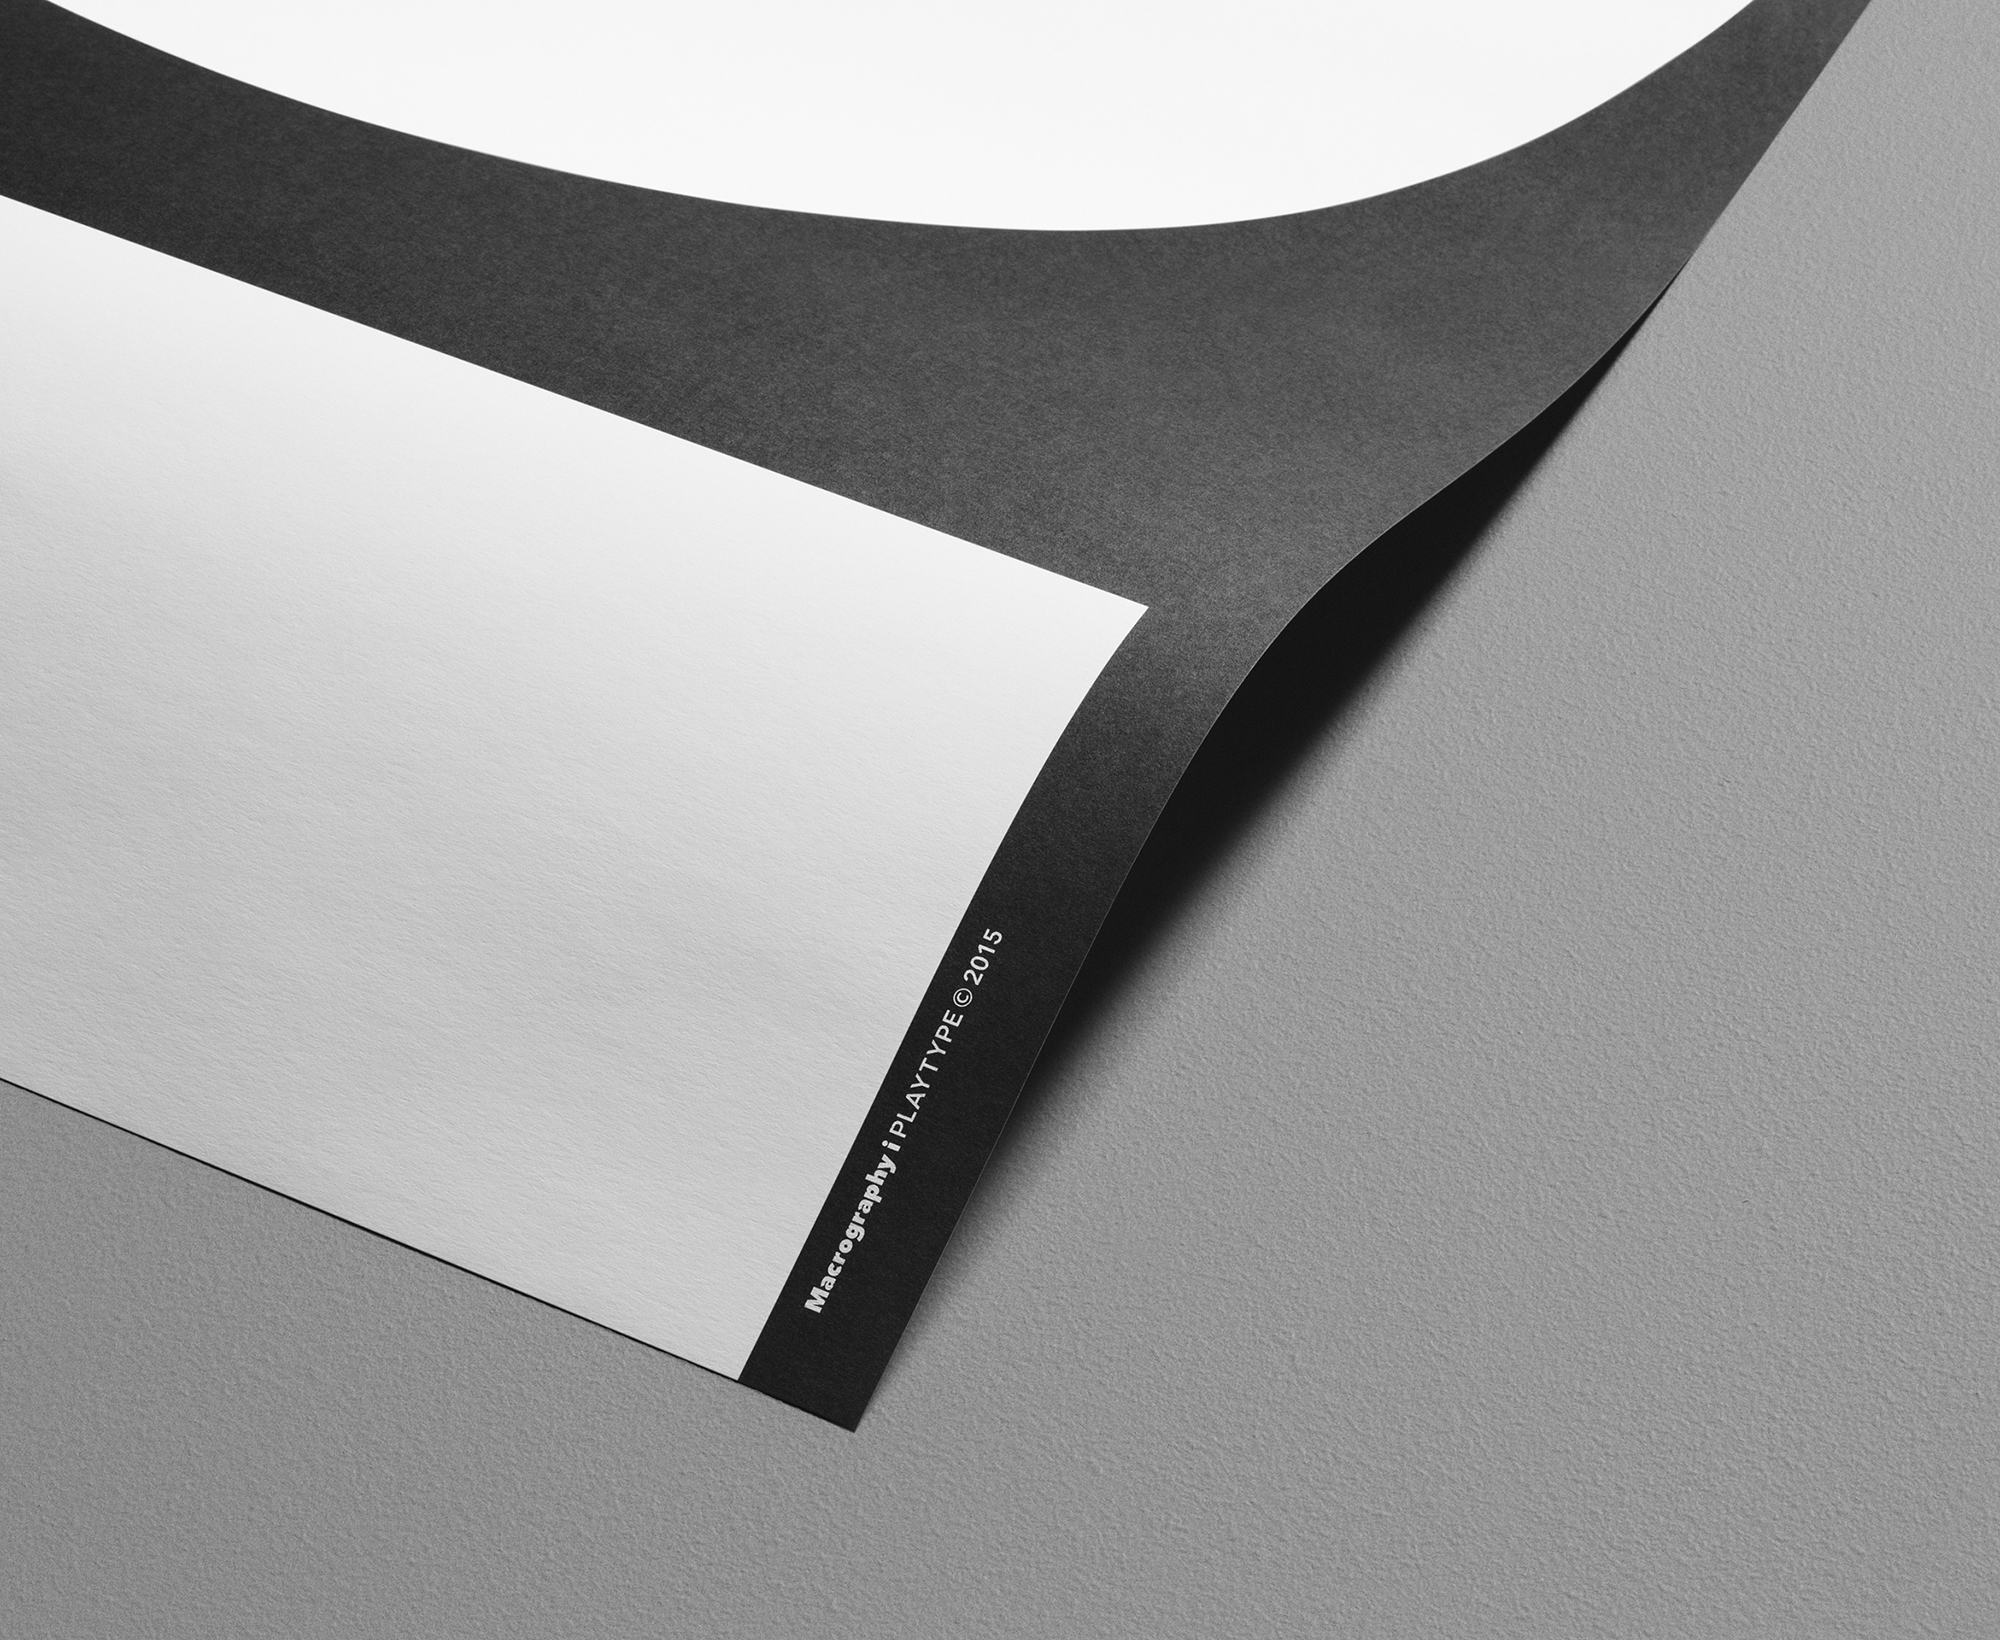 Playtype Poster Macrography